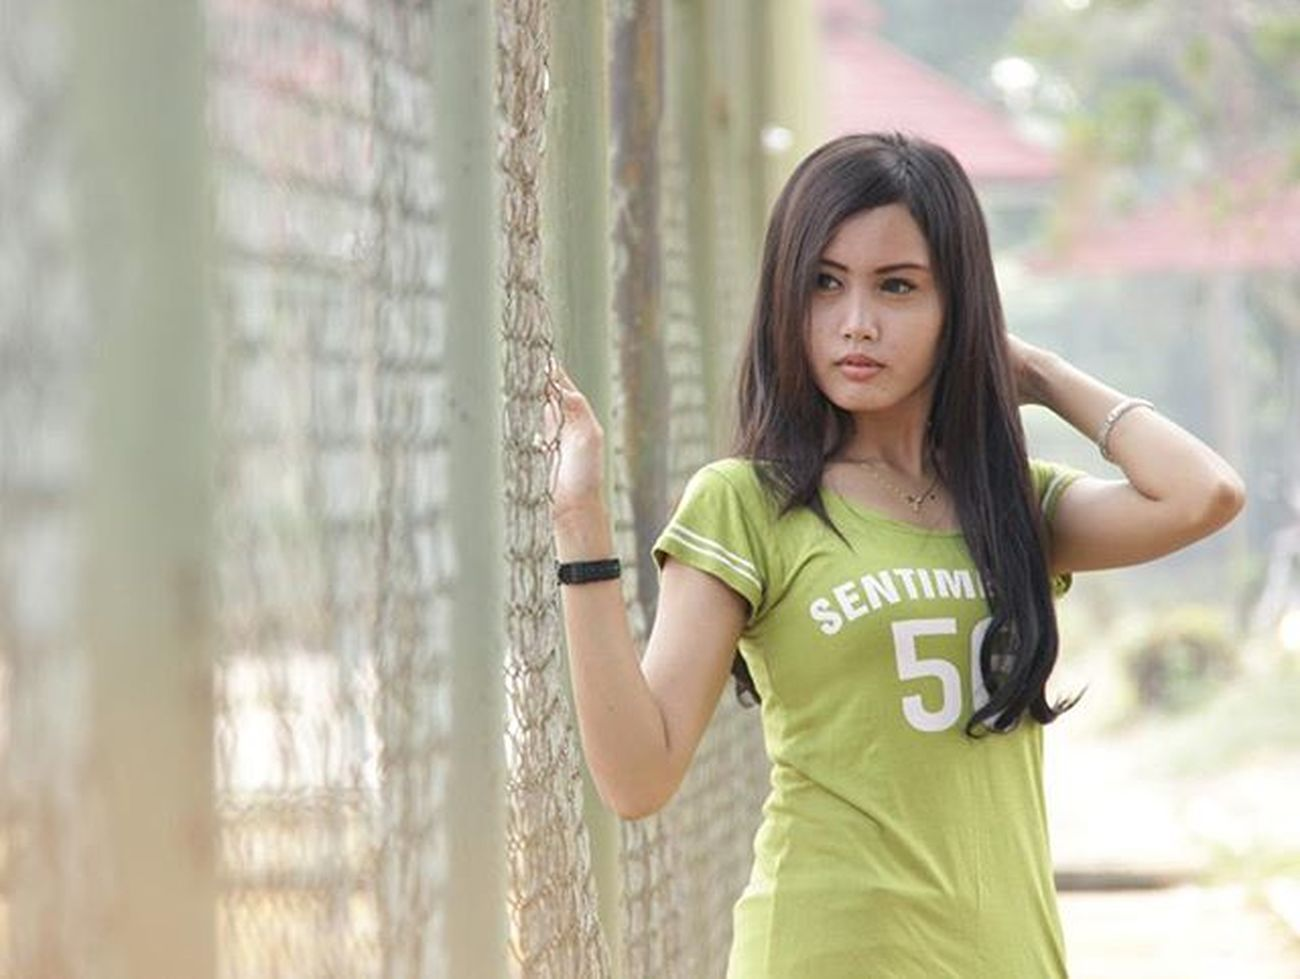 Cirebonphotographyforum Photographer Photoofday Photographyindonesia Sporty Photomodel Moodmodel Potrait Landscape Model